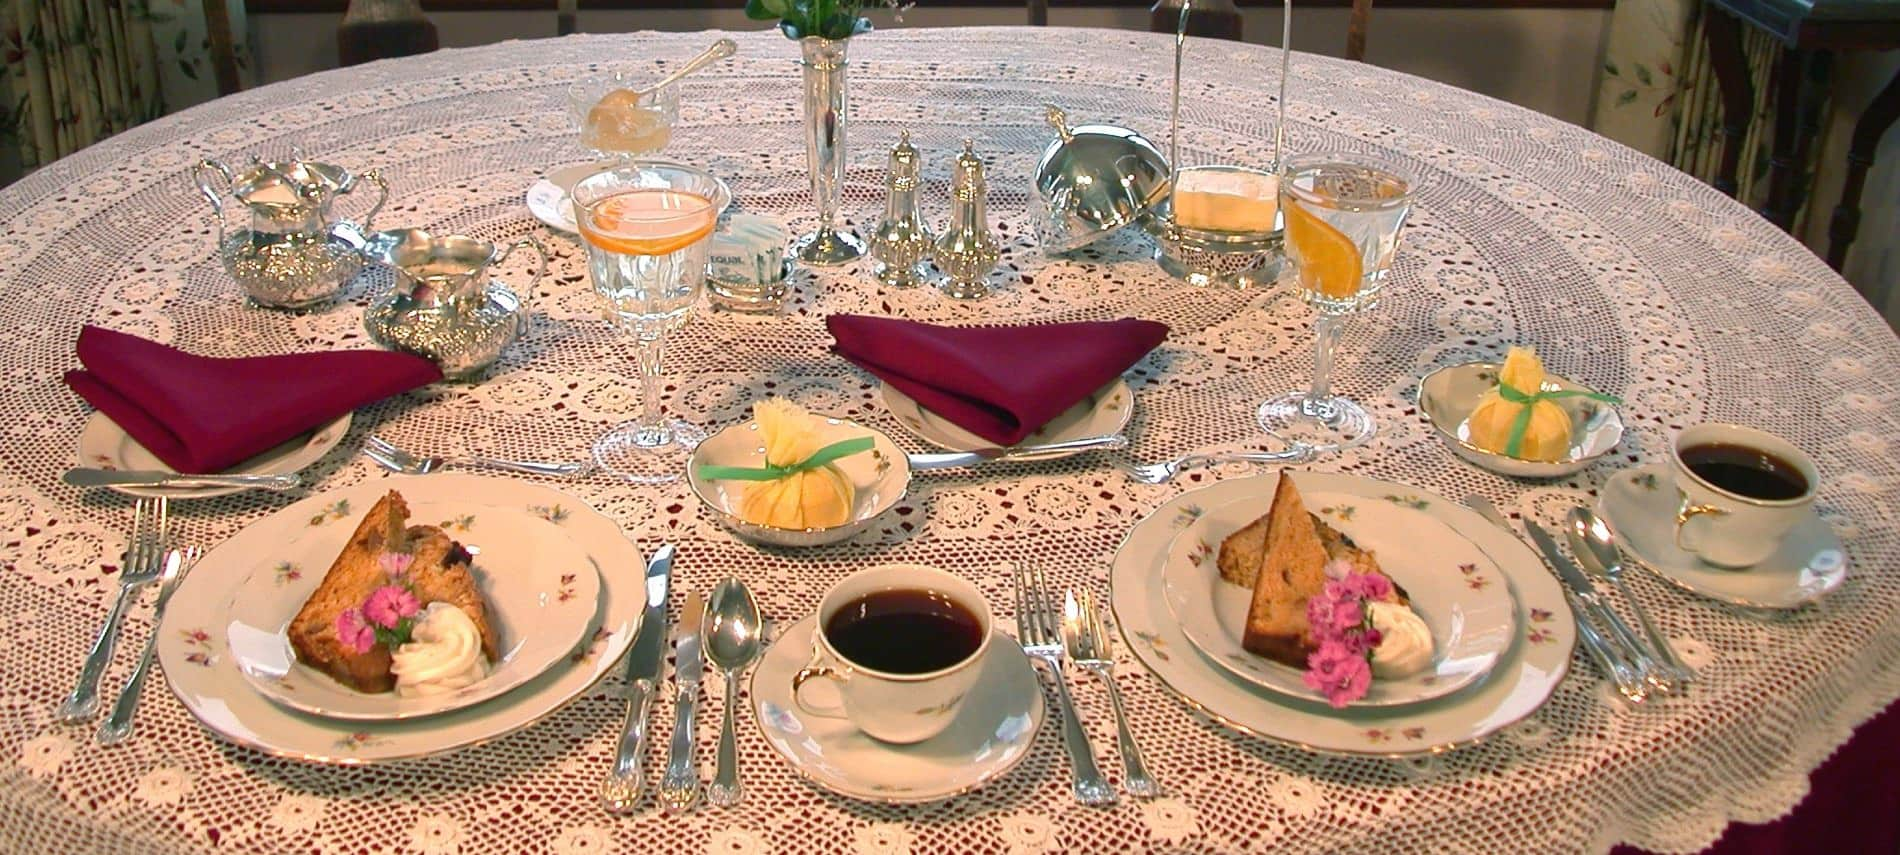 Round table with burgundy cloth and ivory lace topper, white plates with toast and butter, coffee cups with saucers